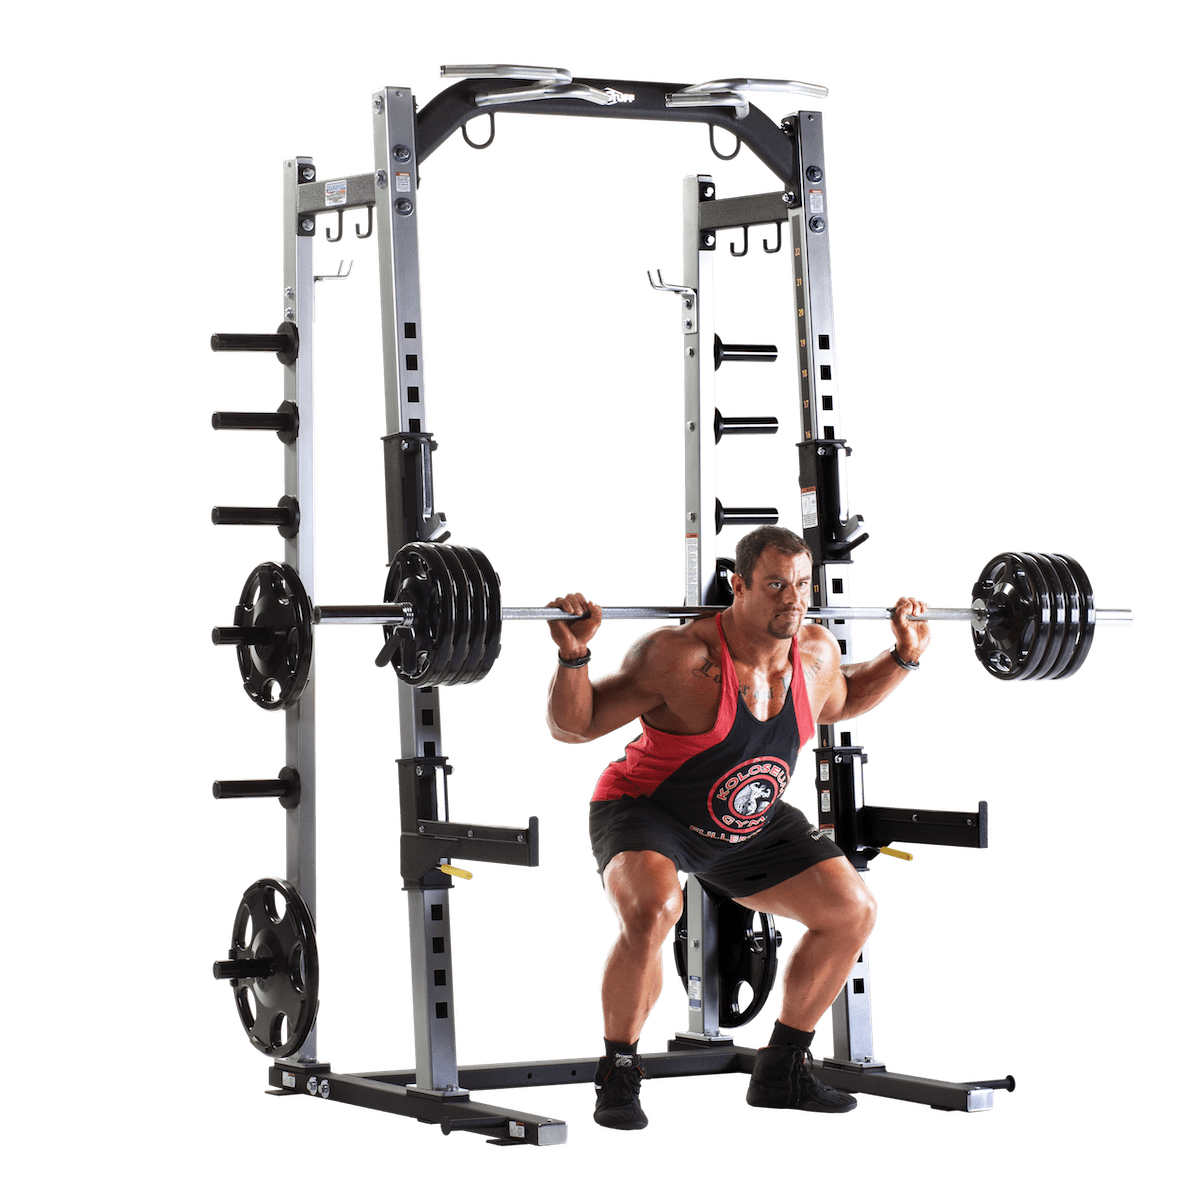 gym equipment reviewed for quality part 2